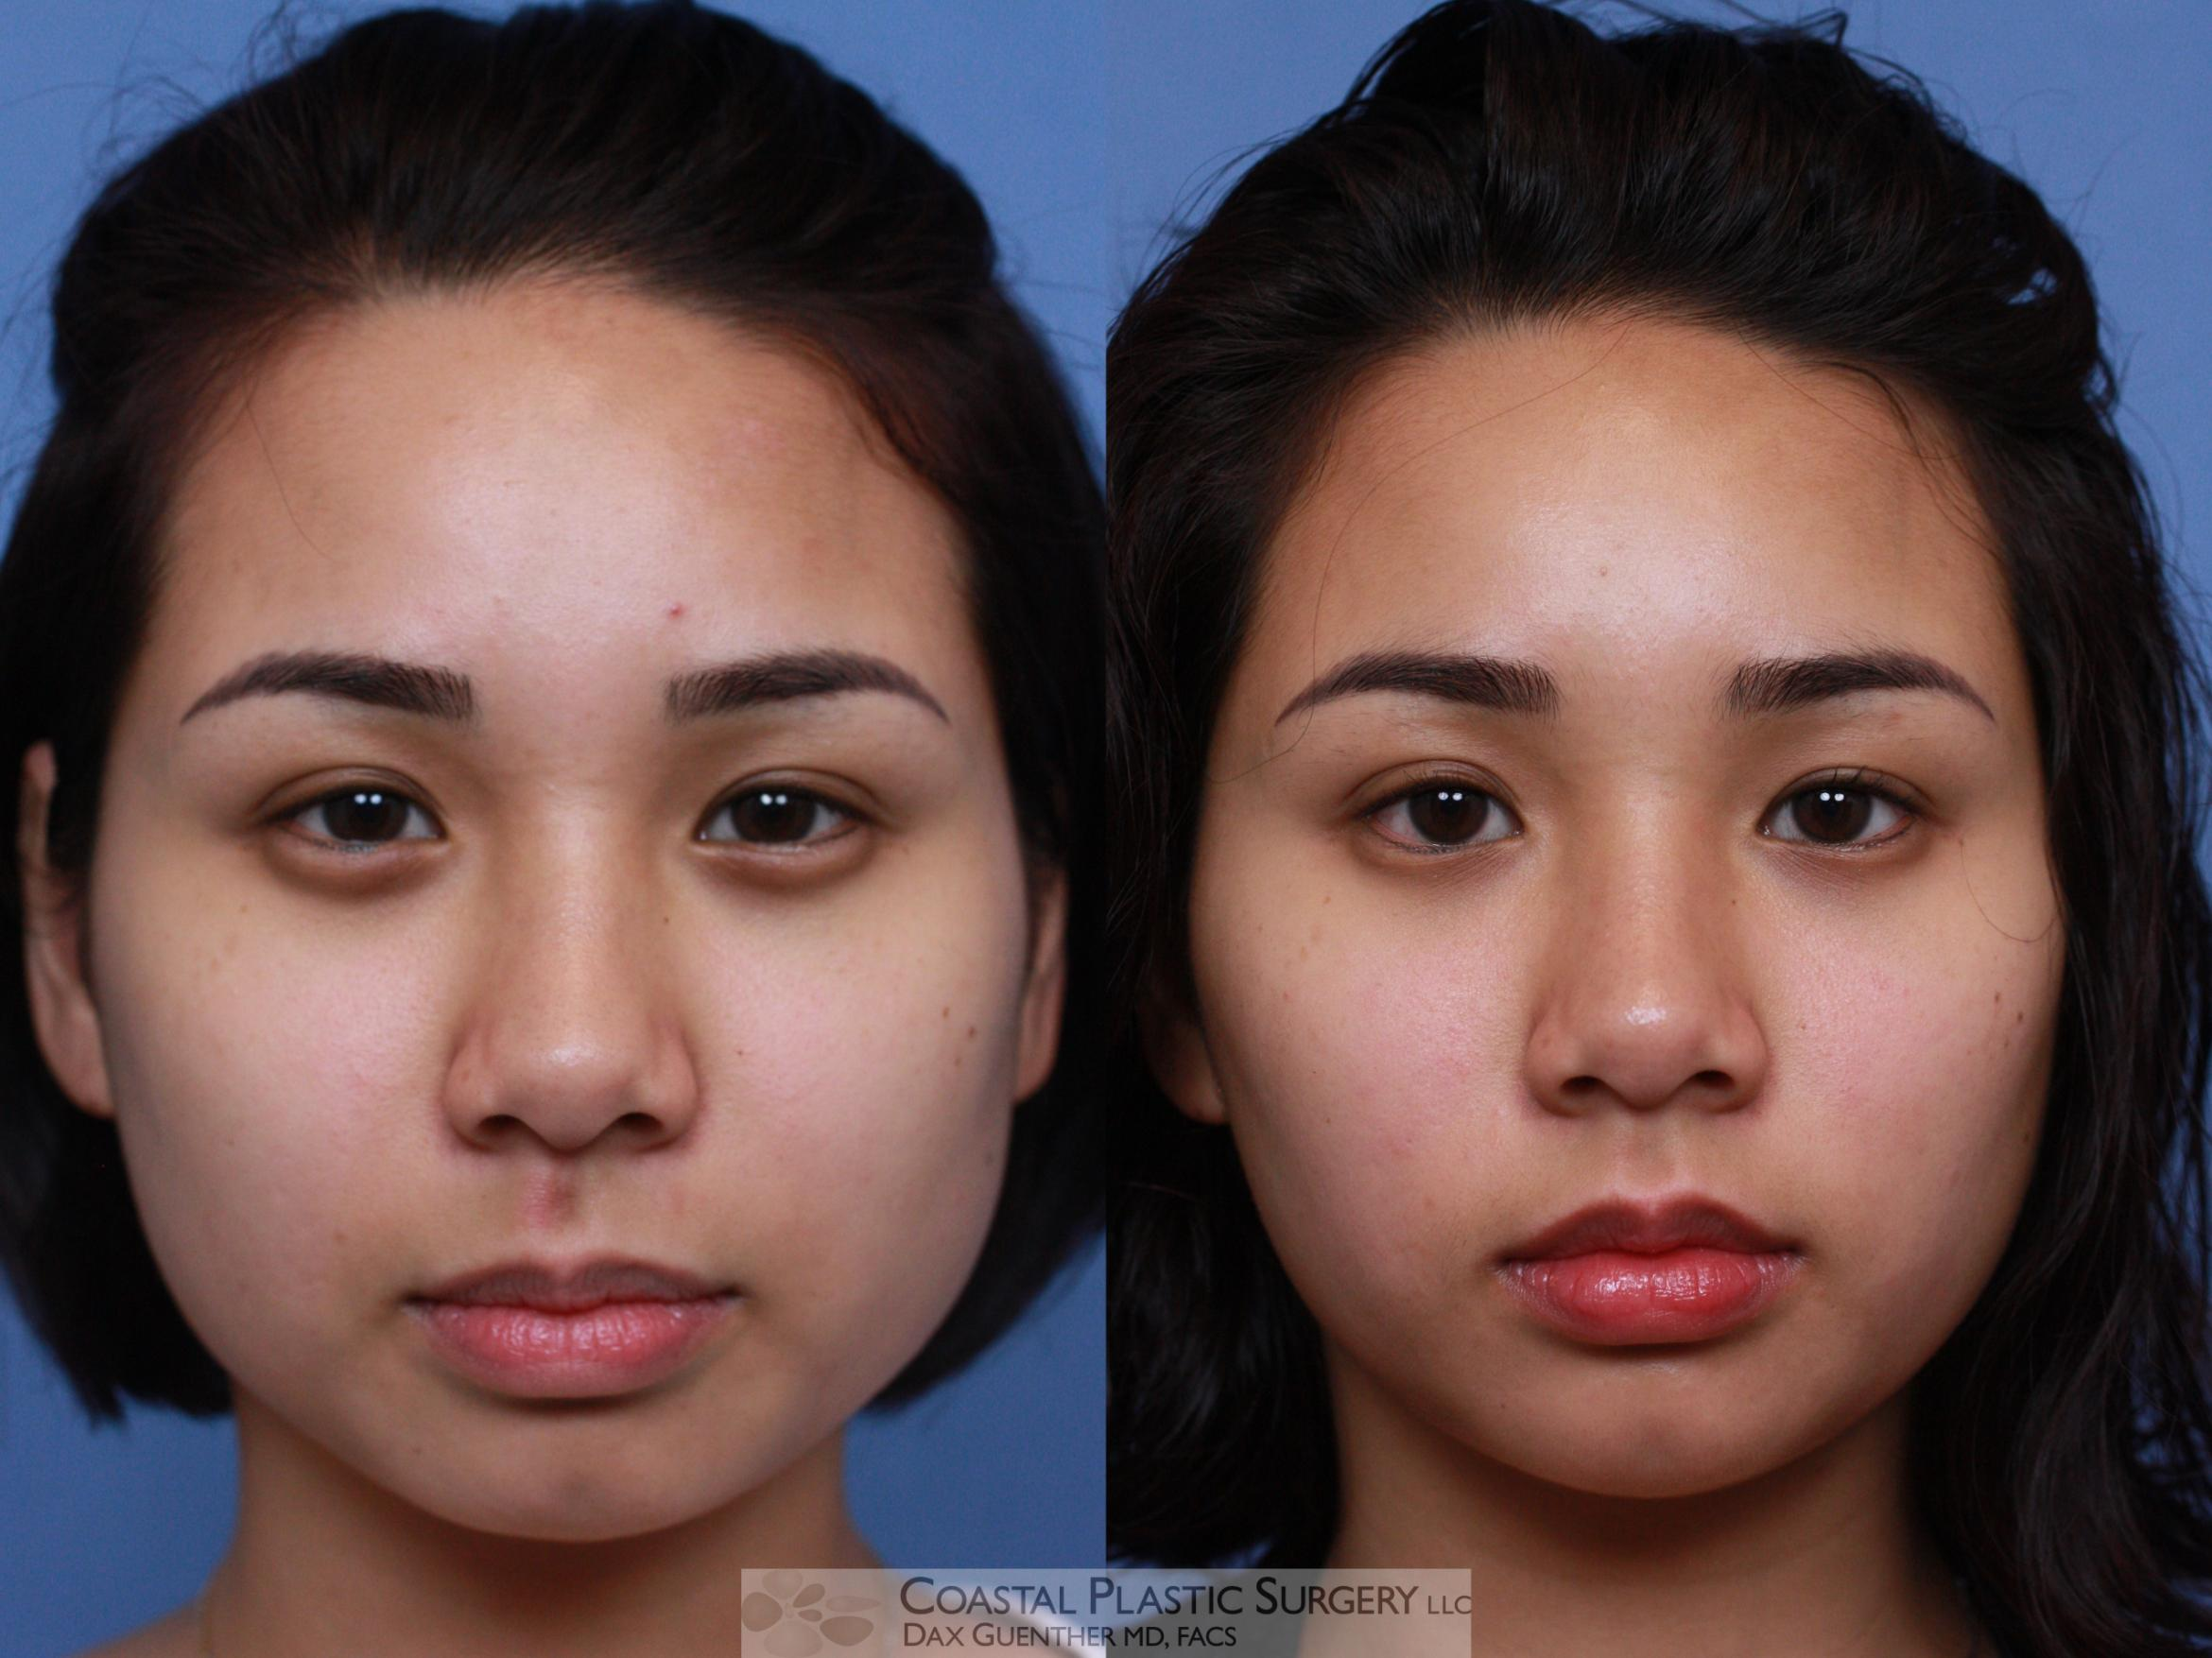 Botox & Dysport Before & After Photo | Hingham, MA | Dax Guenther, MD: Coastal Plastic Surgery